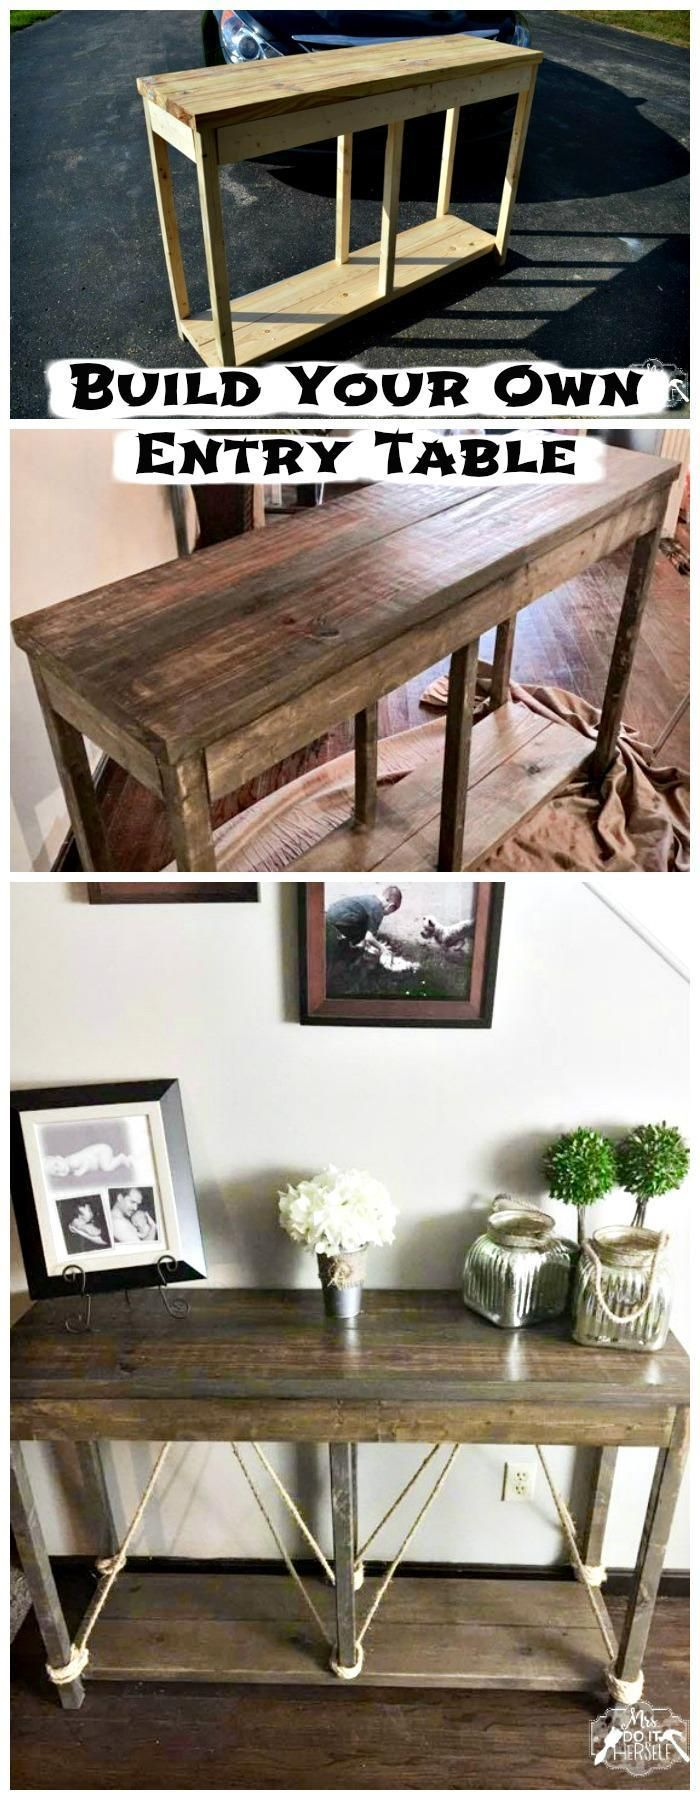 Best 25+ Country entryway ideas on Pinterest | French style house, Entryway  shoe storage and Entryway bench storage